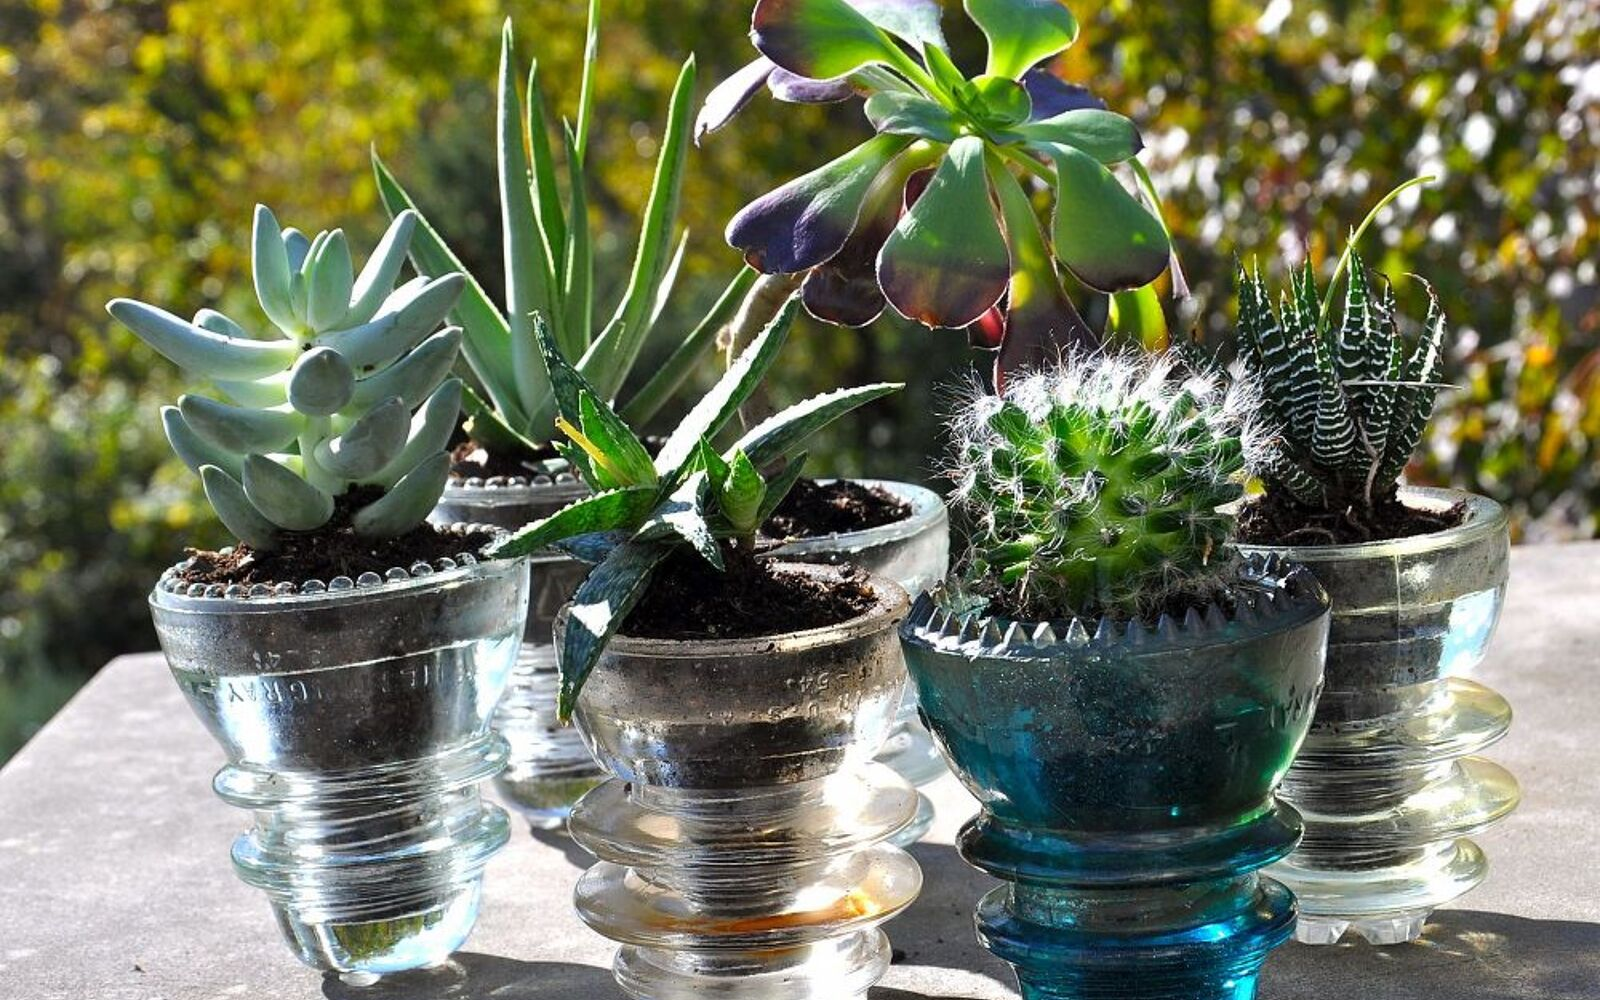 s the 15 tiniest succulent ideas we ve ever seen, flowers, gardening, succulents, Some lil cuttings nested in glass insulators